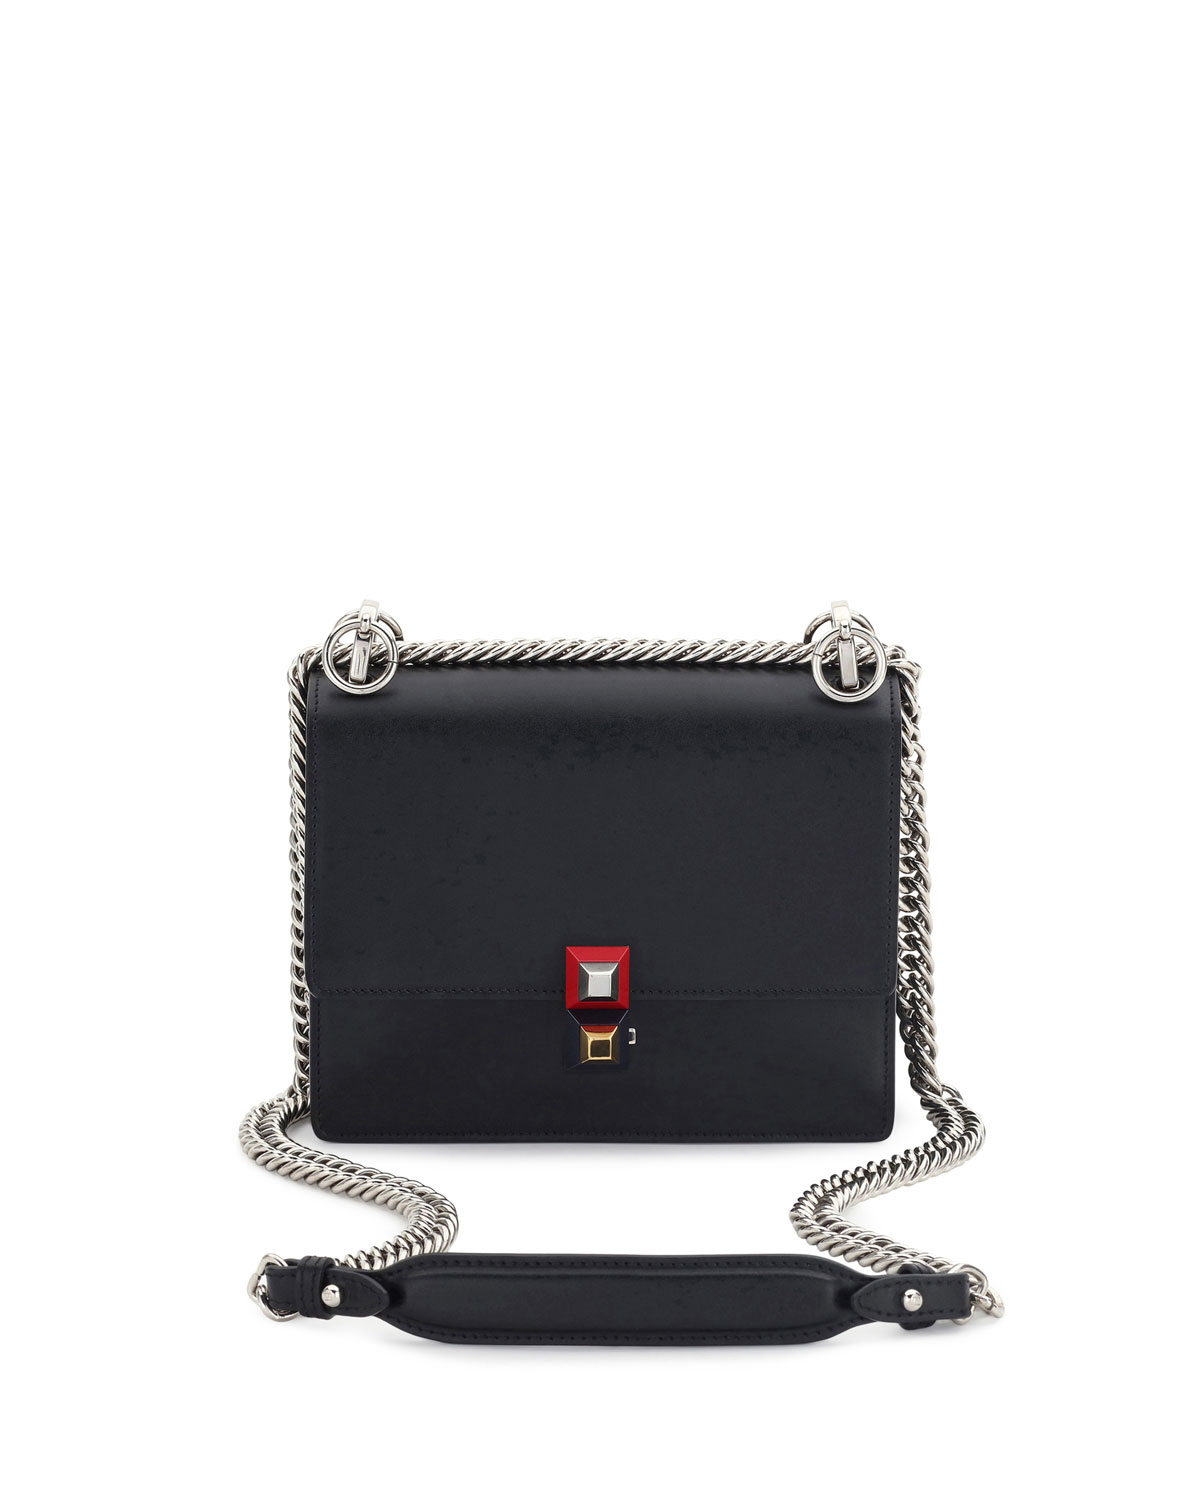 8bf65d00b0 Fendi Kan I Mini Leather Chain Shoulder Bag